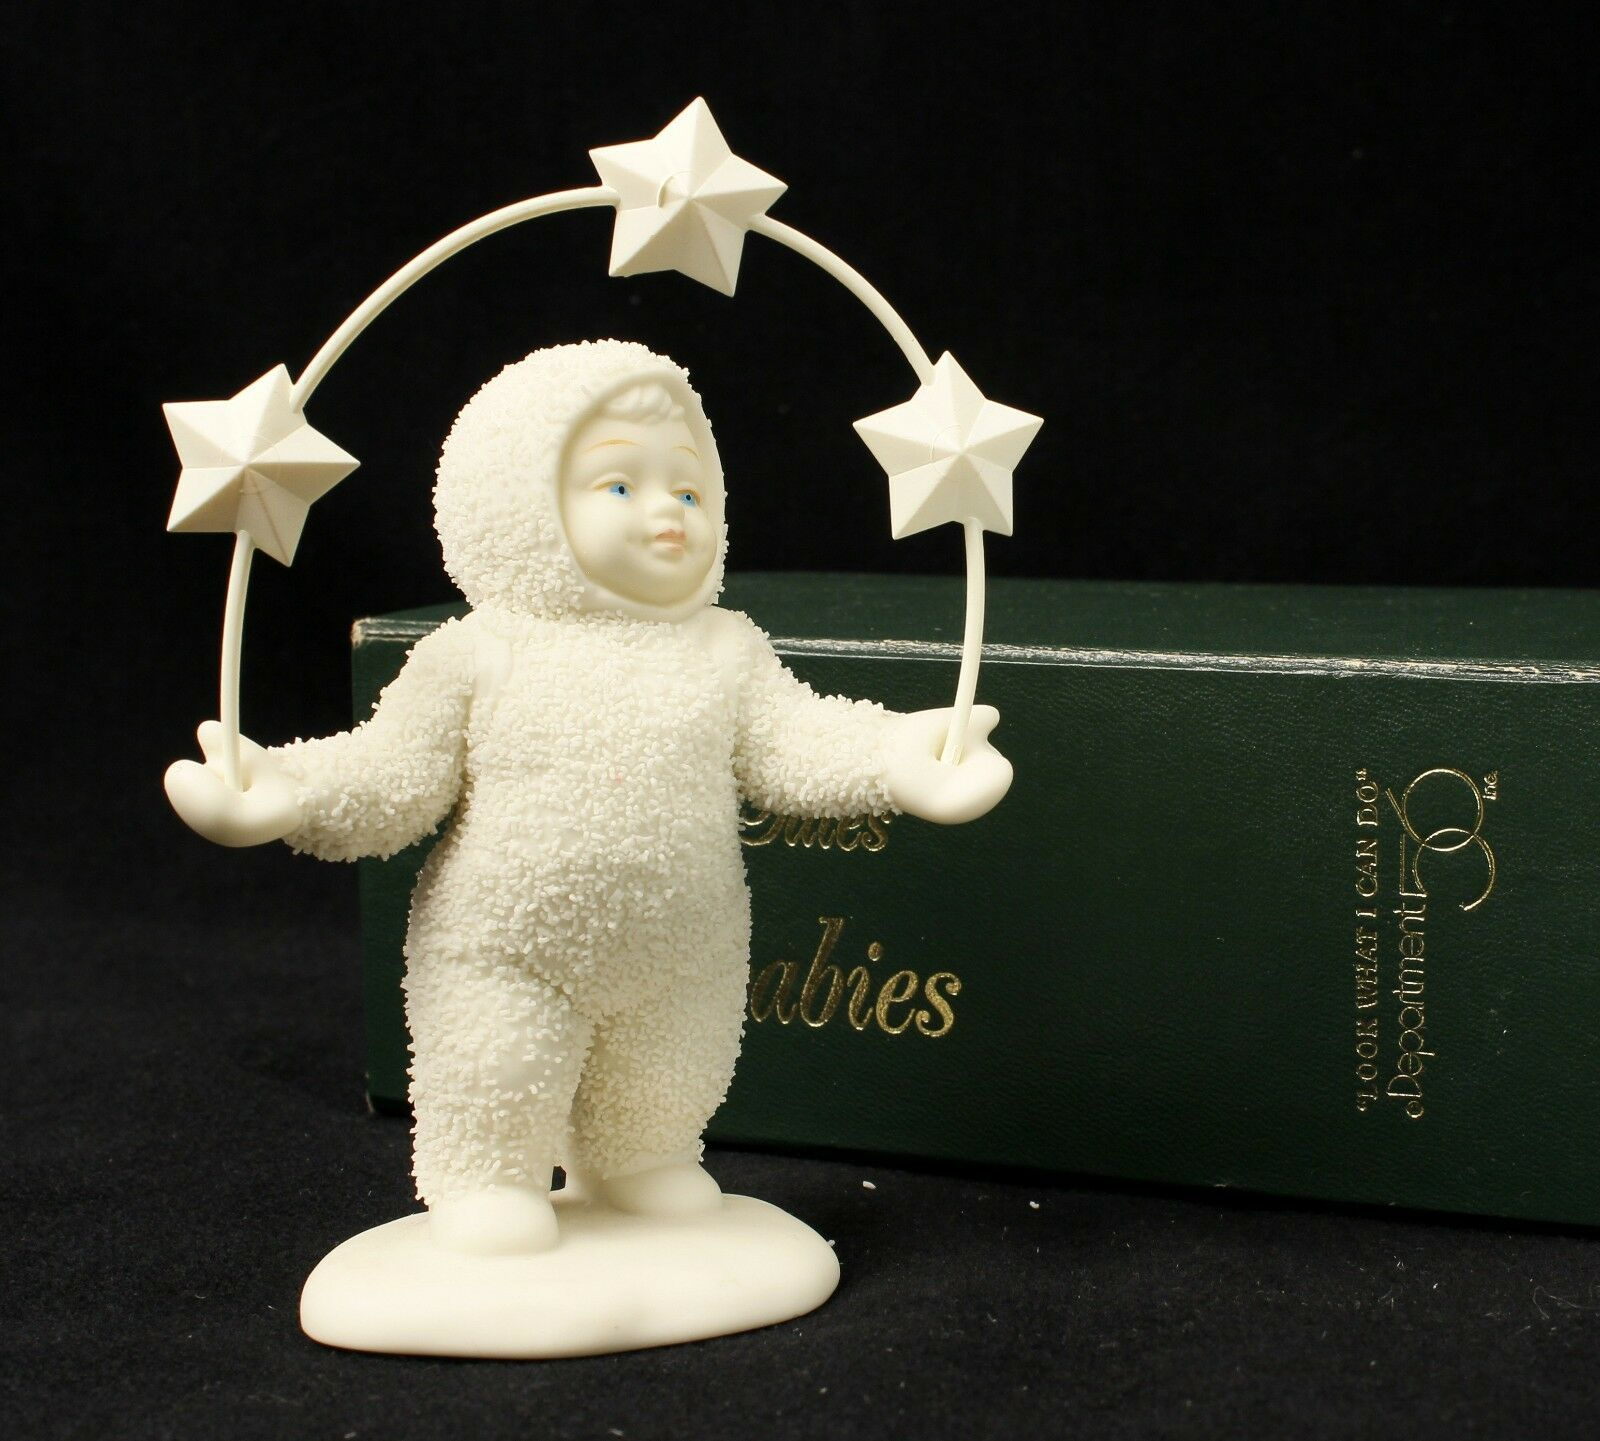 Primary image for Department 56 Snowbabies Look What I Can Do Mint in Box